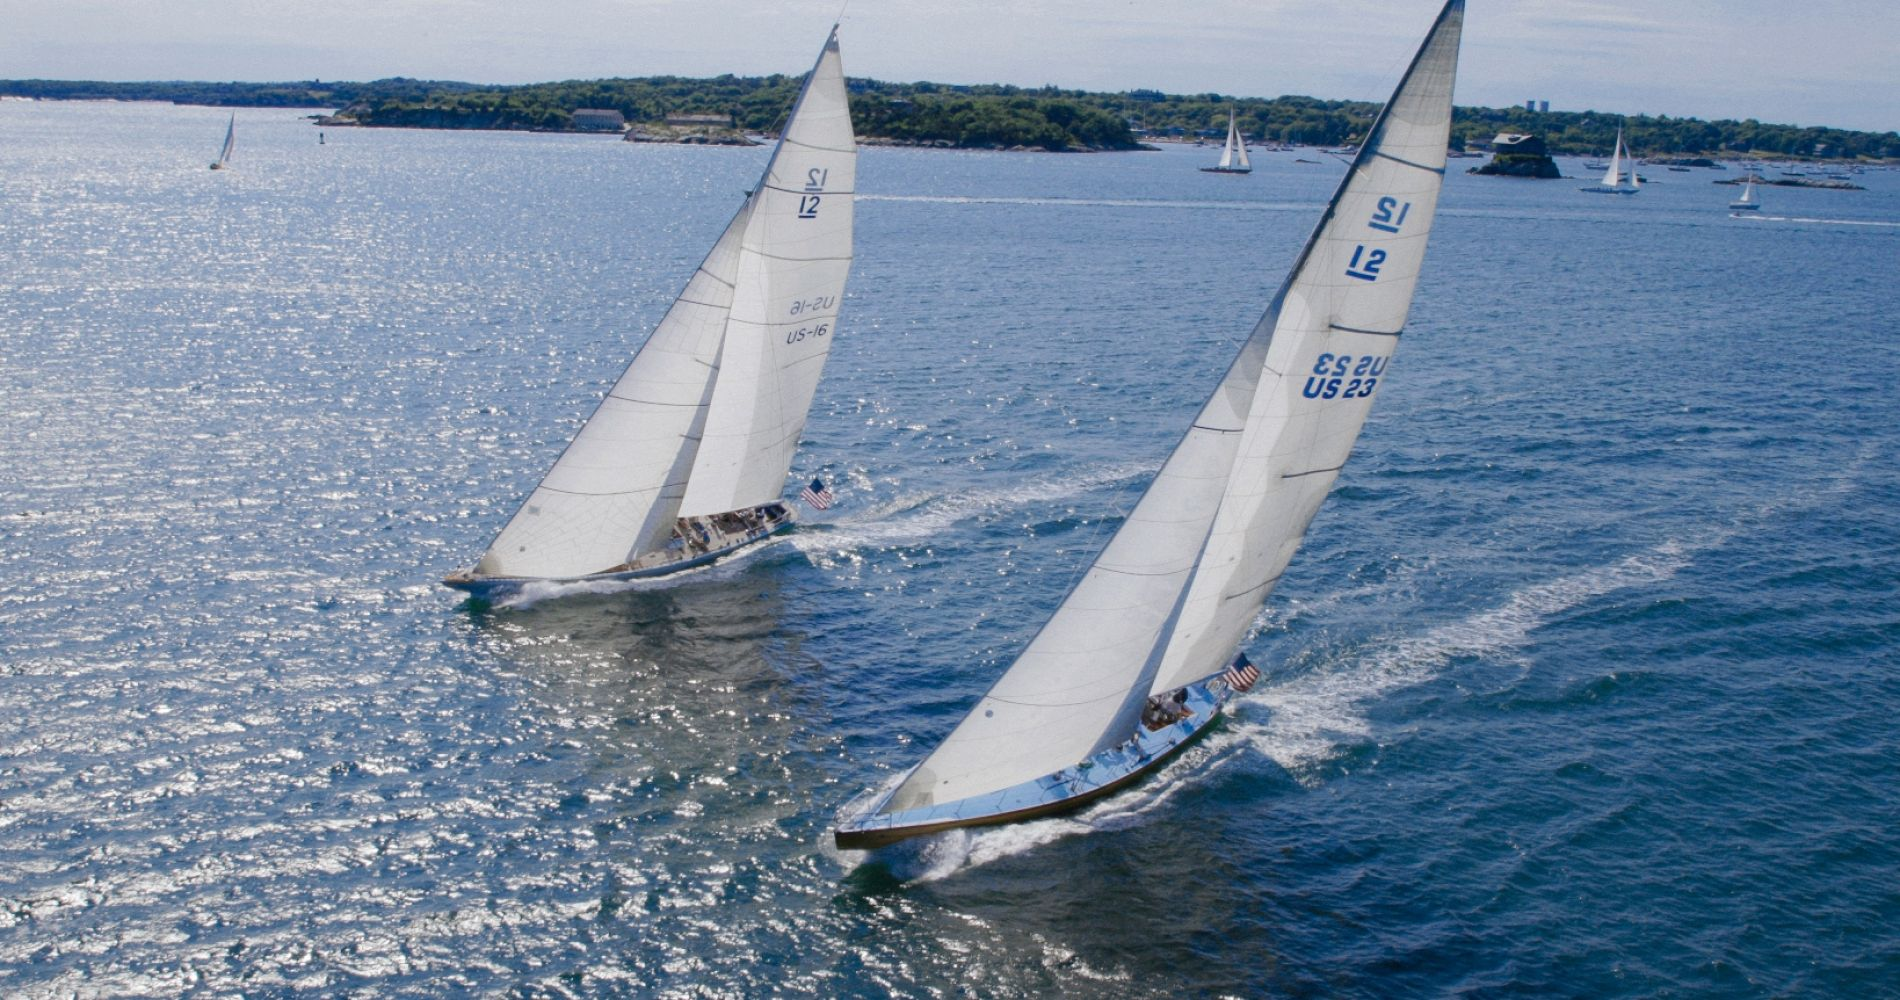 Sailing Experience in Newport